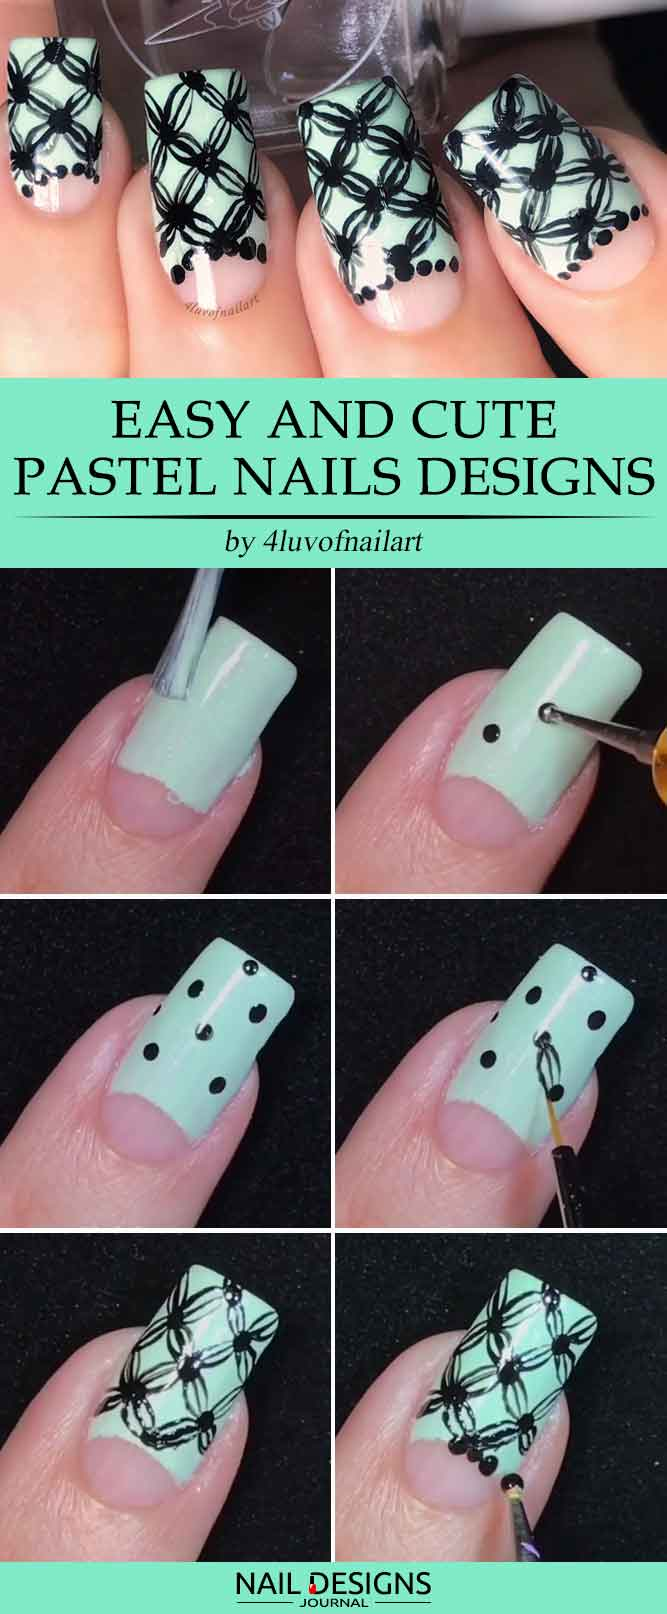 Try these easy nail designs naildesignsjournal easy nail designs with hand painted pattern prinsesfo Image collections